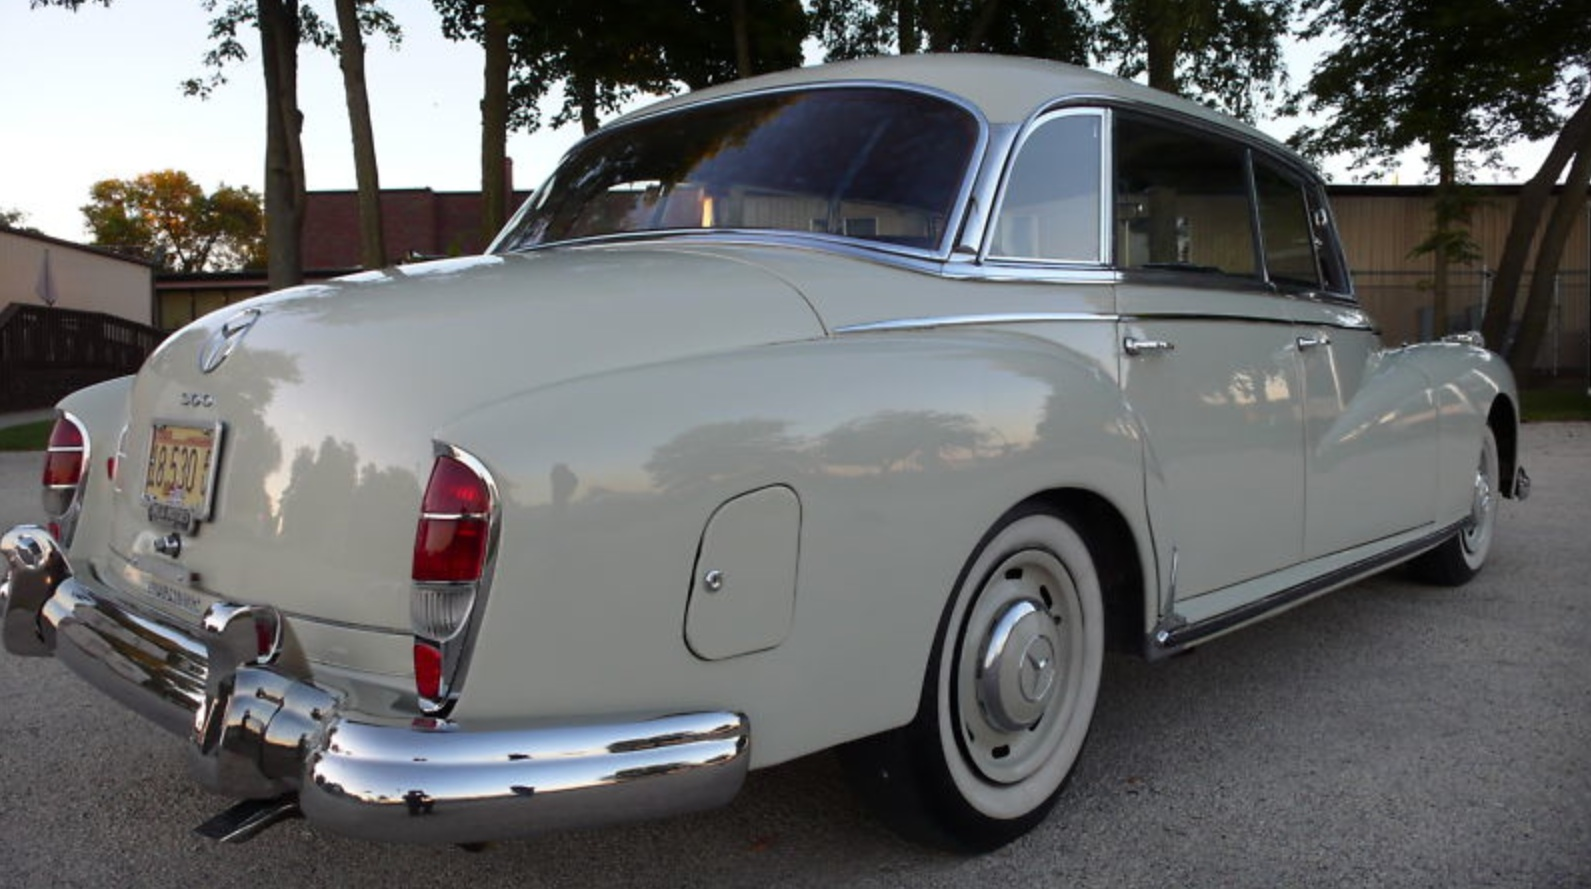 CLICK FOR DETAILS: 1960 Mercedes-Benz 300d on eBay